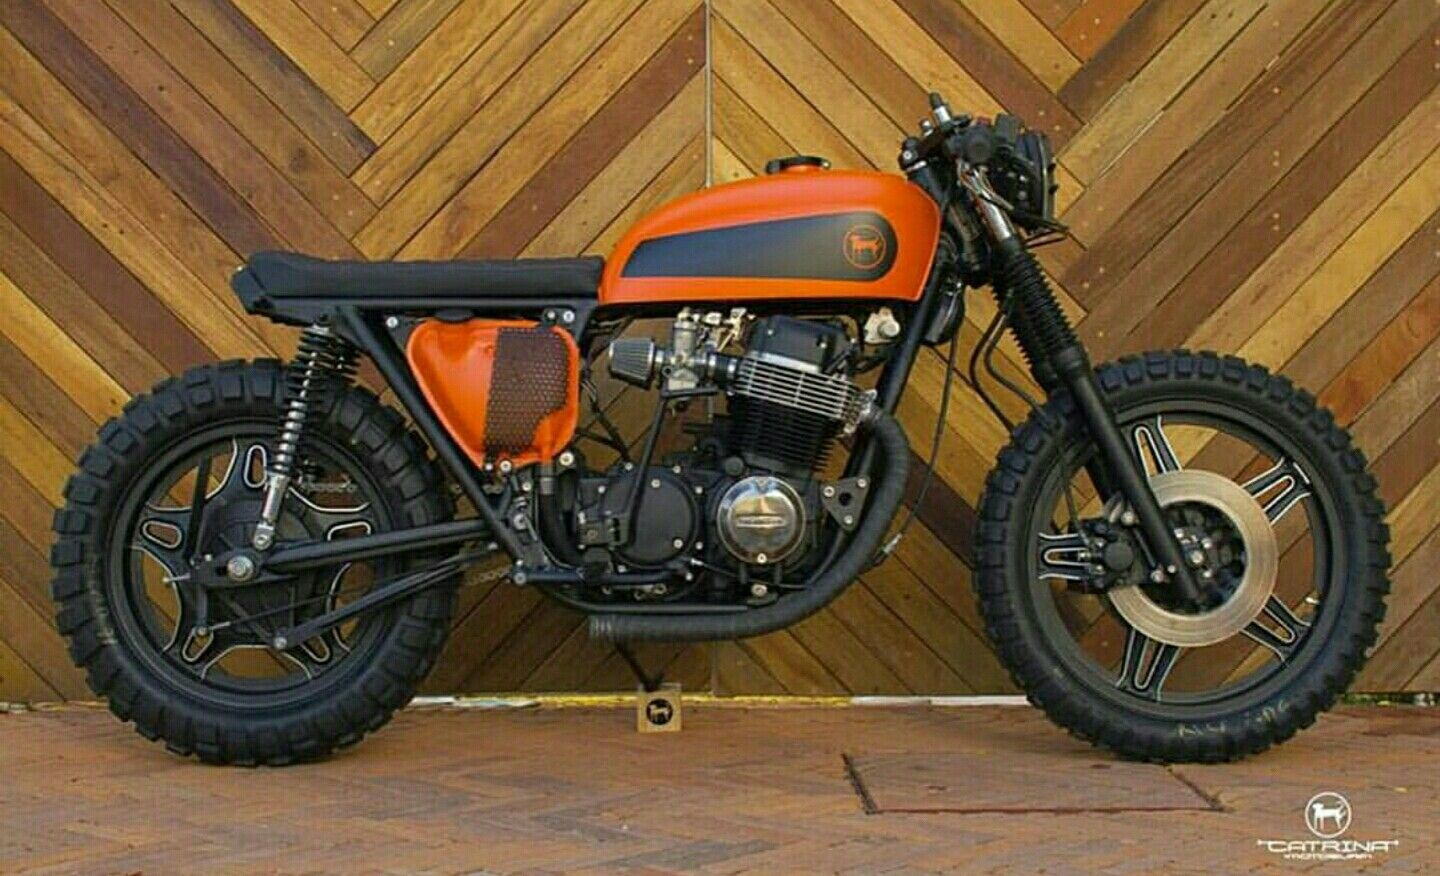 The base bike was a 1980 xs650 in a very poor state cylinders where - Yamaha Xs650 Thrive Motorcycle Yamaha Xs Series Bikes Have Been Some Of The Most Reliable Bikes Over The Past 40 Years From The 650 To The 1100s